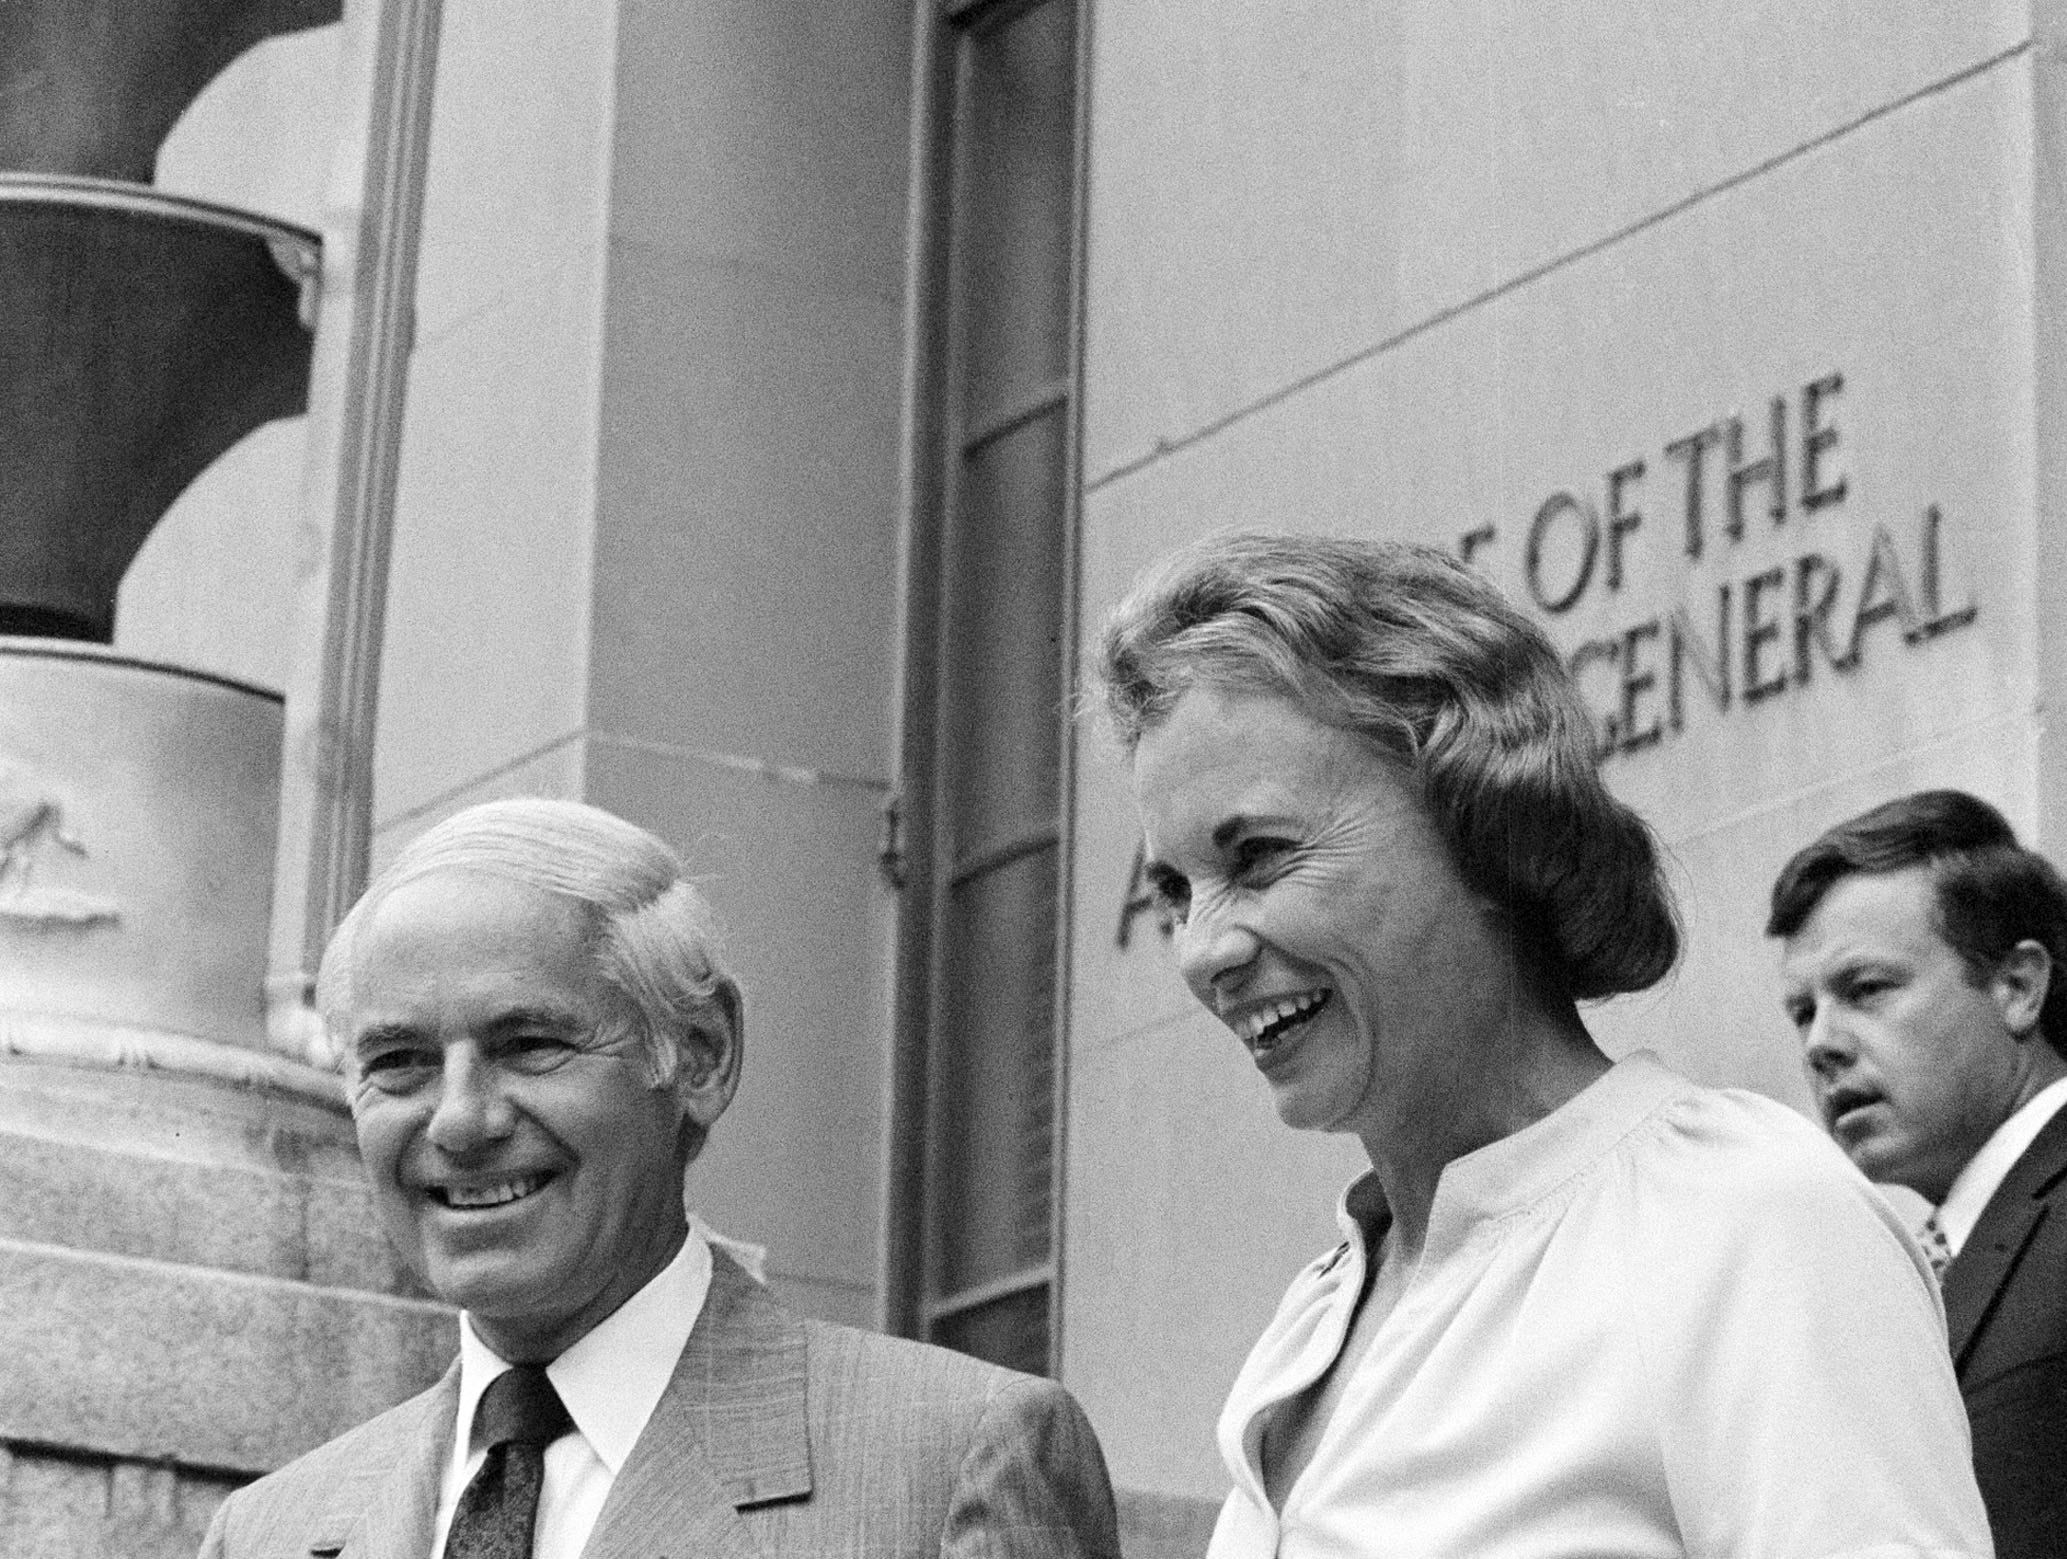 Supreme Court nominee Sandra Day O'Connor is escorted by Attorney General William French Smith toward a waiting car as she departs the Department of Justice in Washington on Sept. 4, 1981.